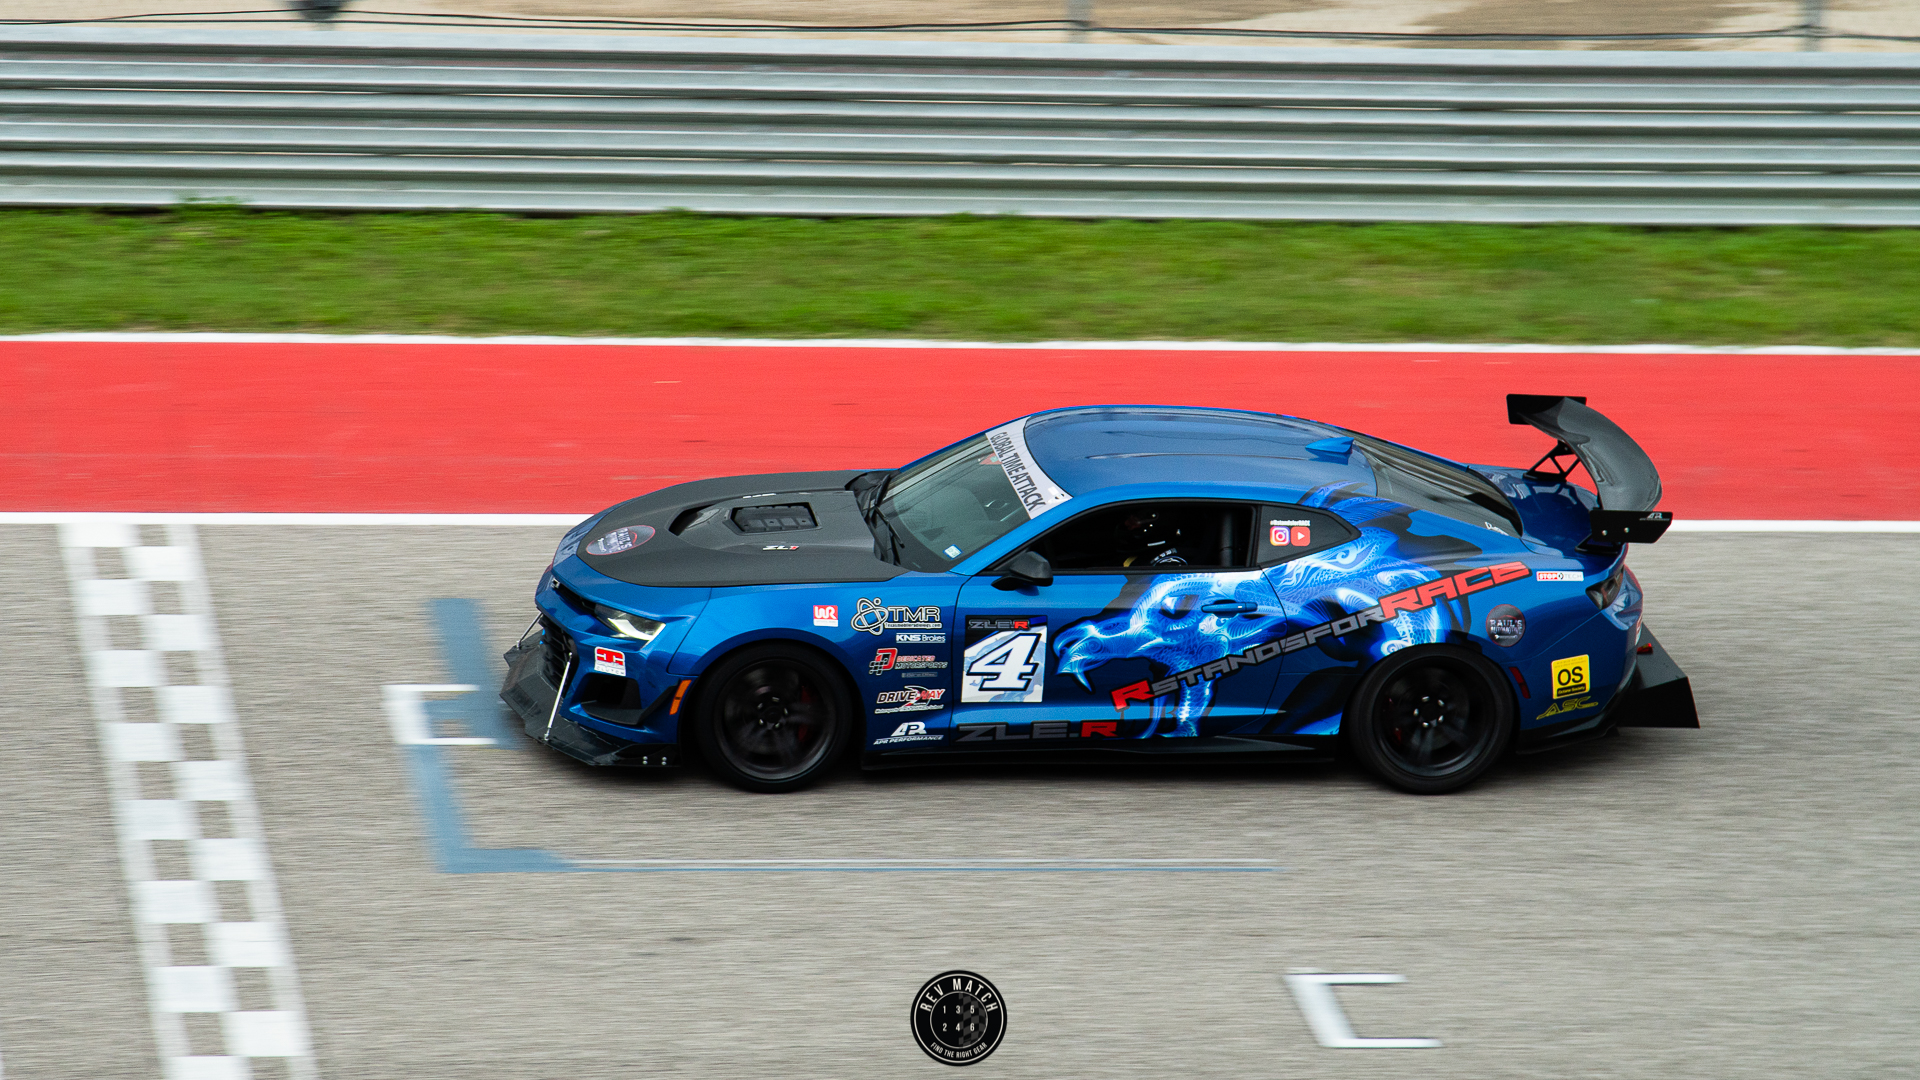 Edge Addict COTA May 2019 Rev Match Media-20.jpg